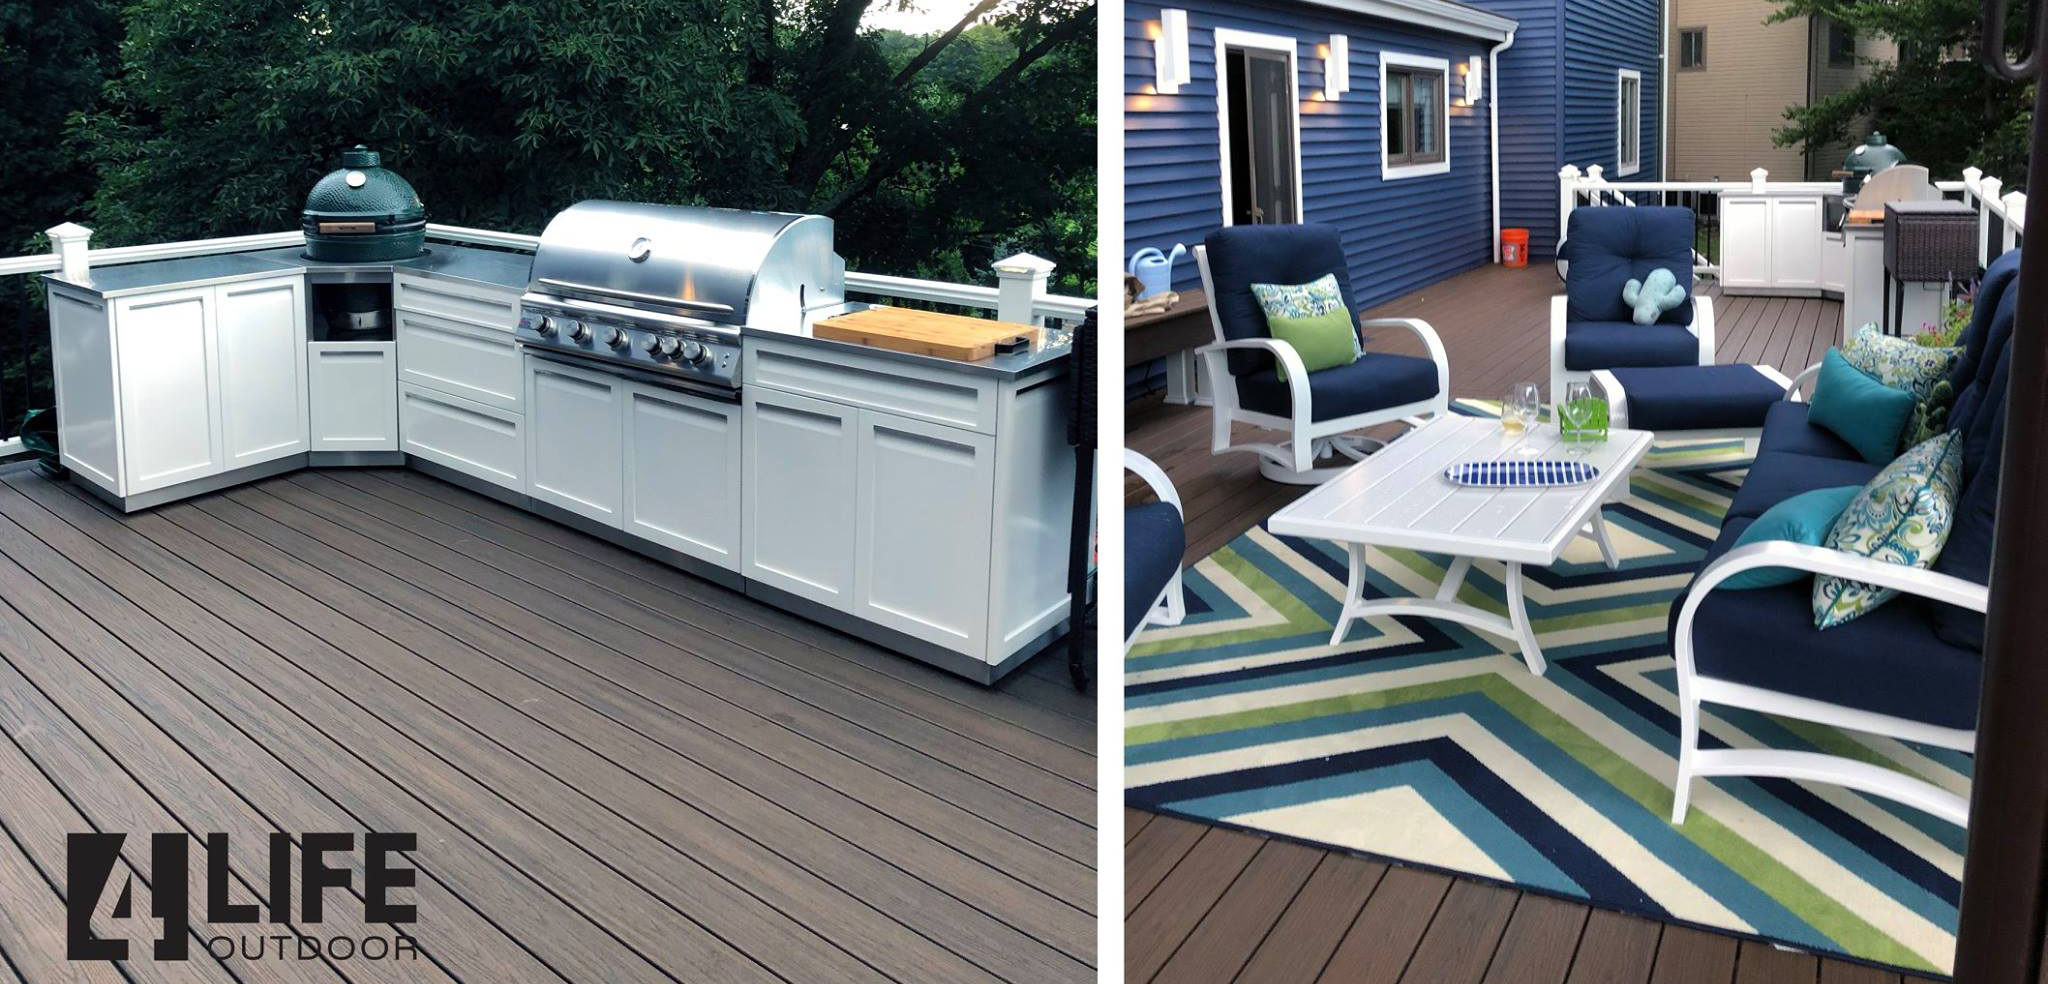 Five common outdoor kitchen design errors many make with their outdoor room 2